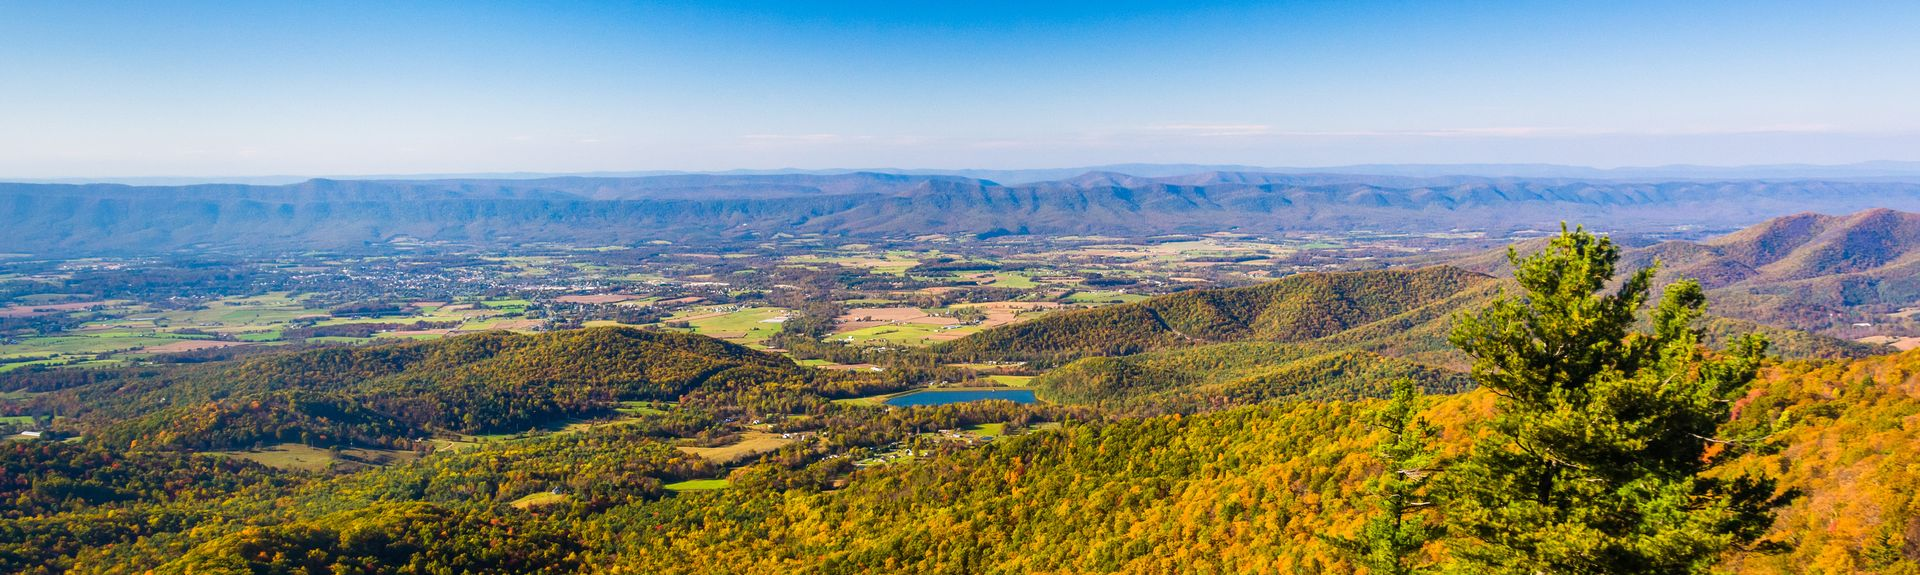 Shenandoah Valley, Virginia, United States of America